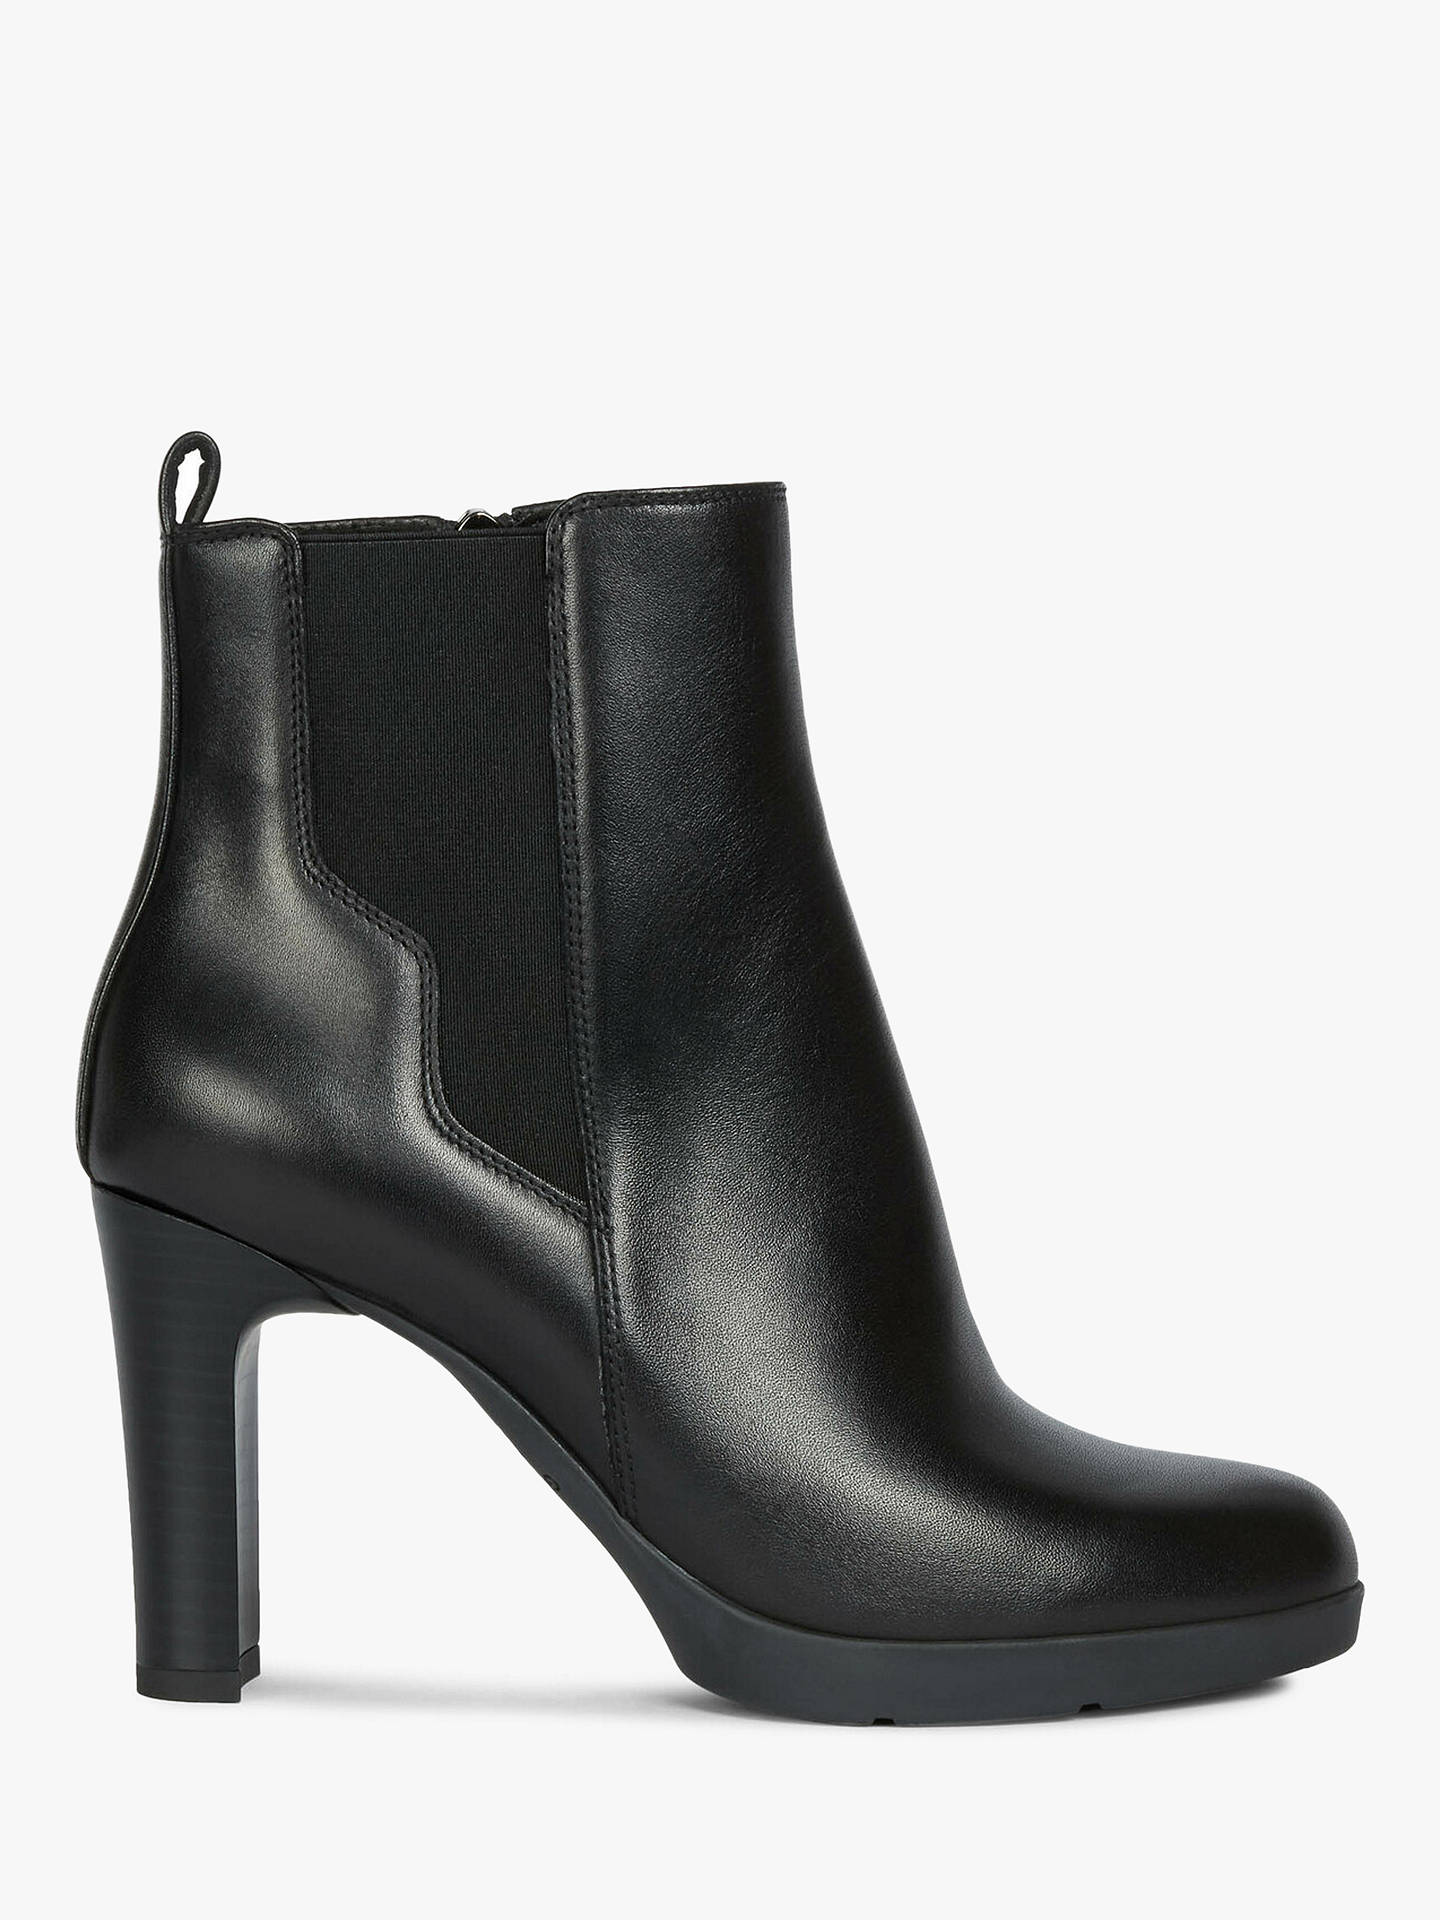 Buy Geox Women's Annya Leather Heeled Ankle Boots, Black, 4 Online at johnlewis.com